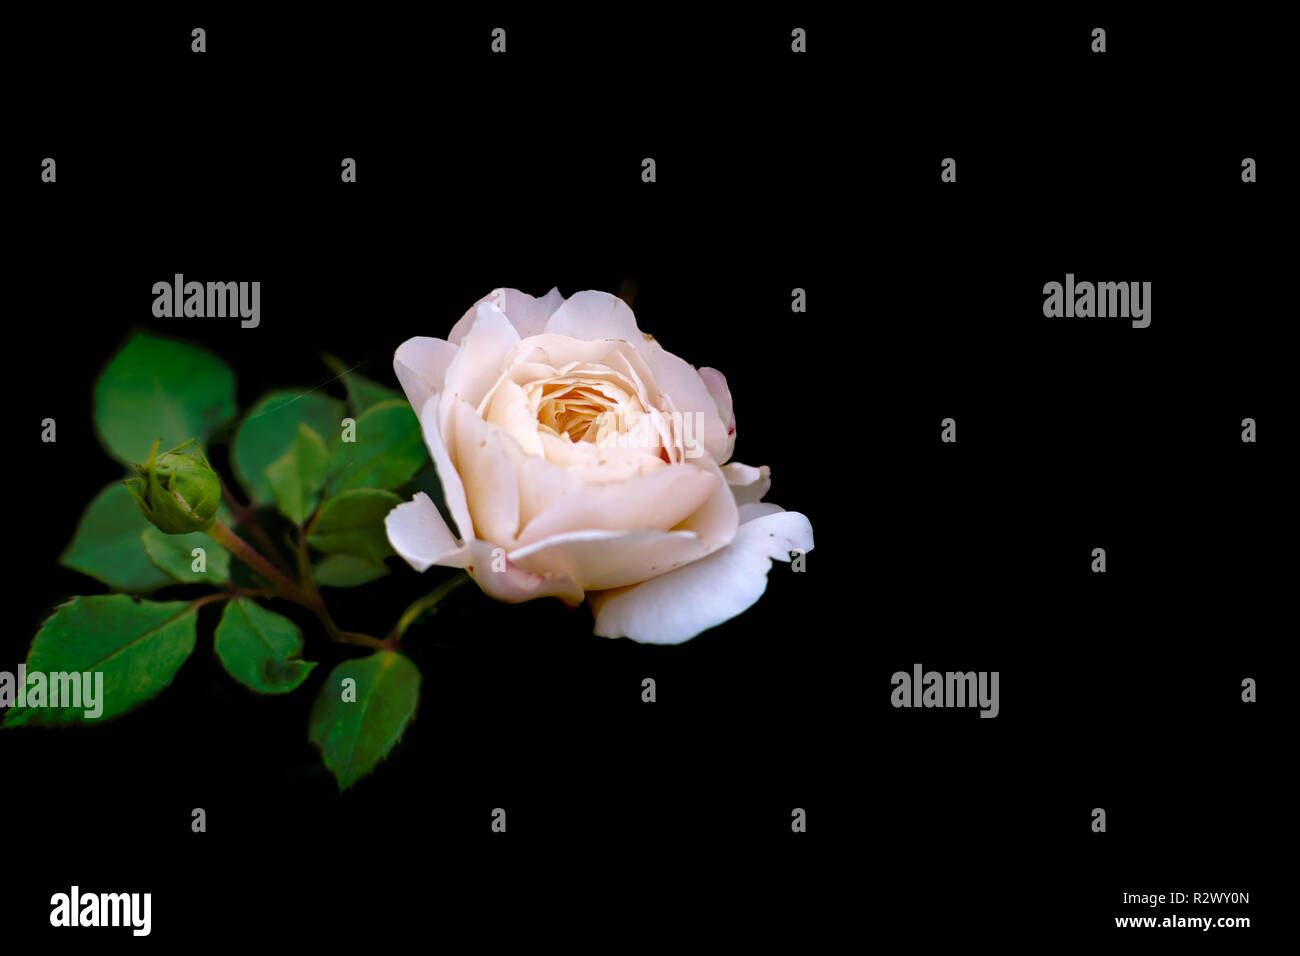 Gentle light pink rose close-up against black background. Dramatic look of pale rose for a gorgeous background. Pale pink rose in the dark. - Stock Image